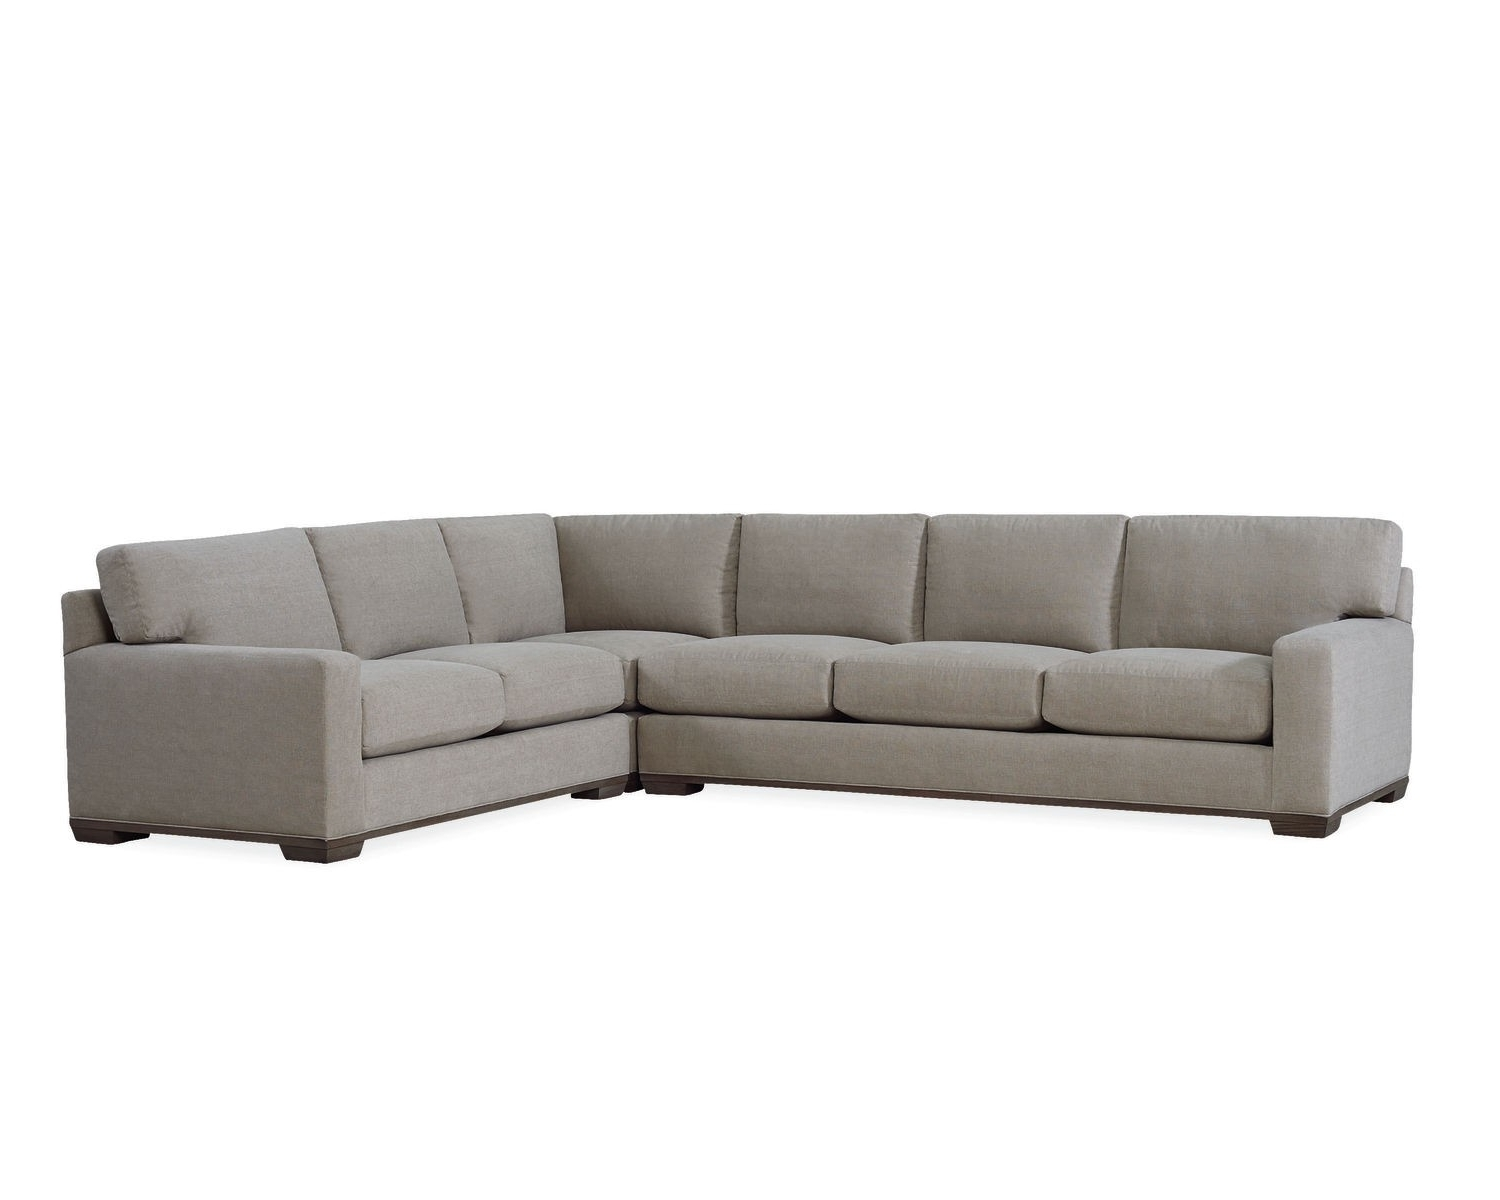 Nashville Chaise Sectional (View 9 of 20)